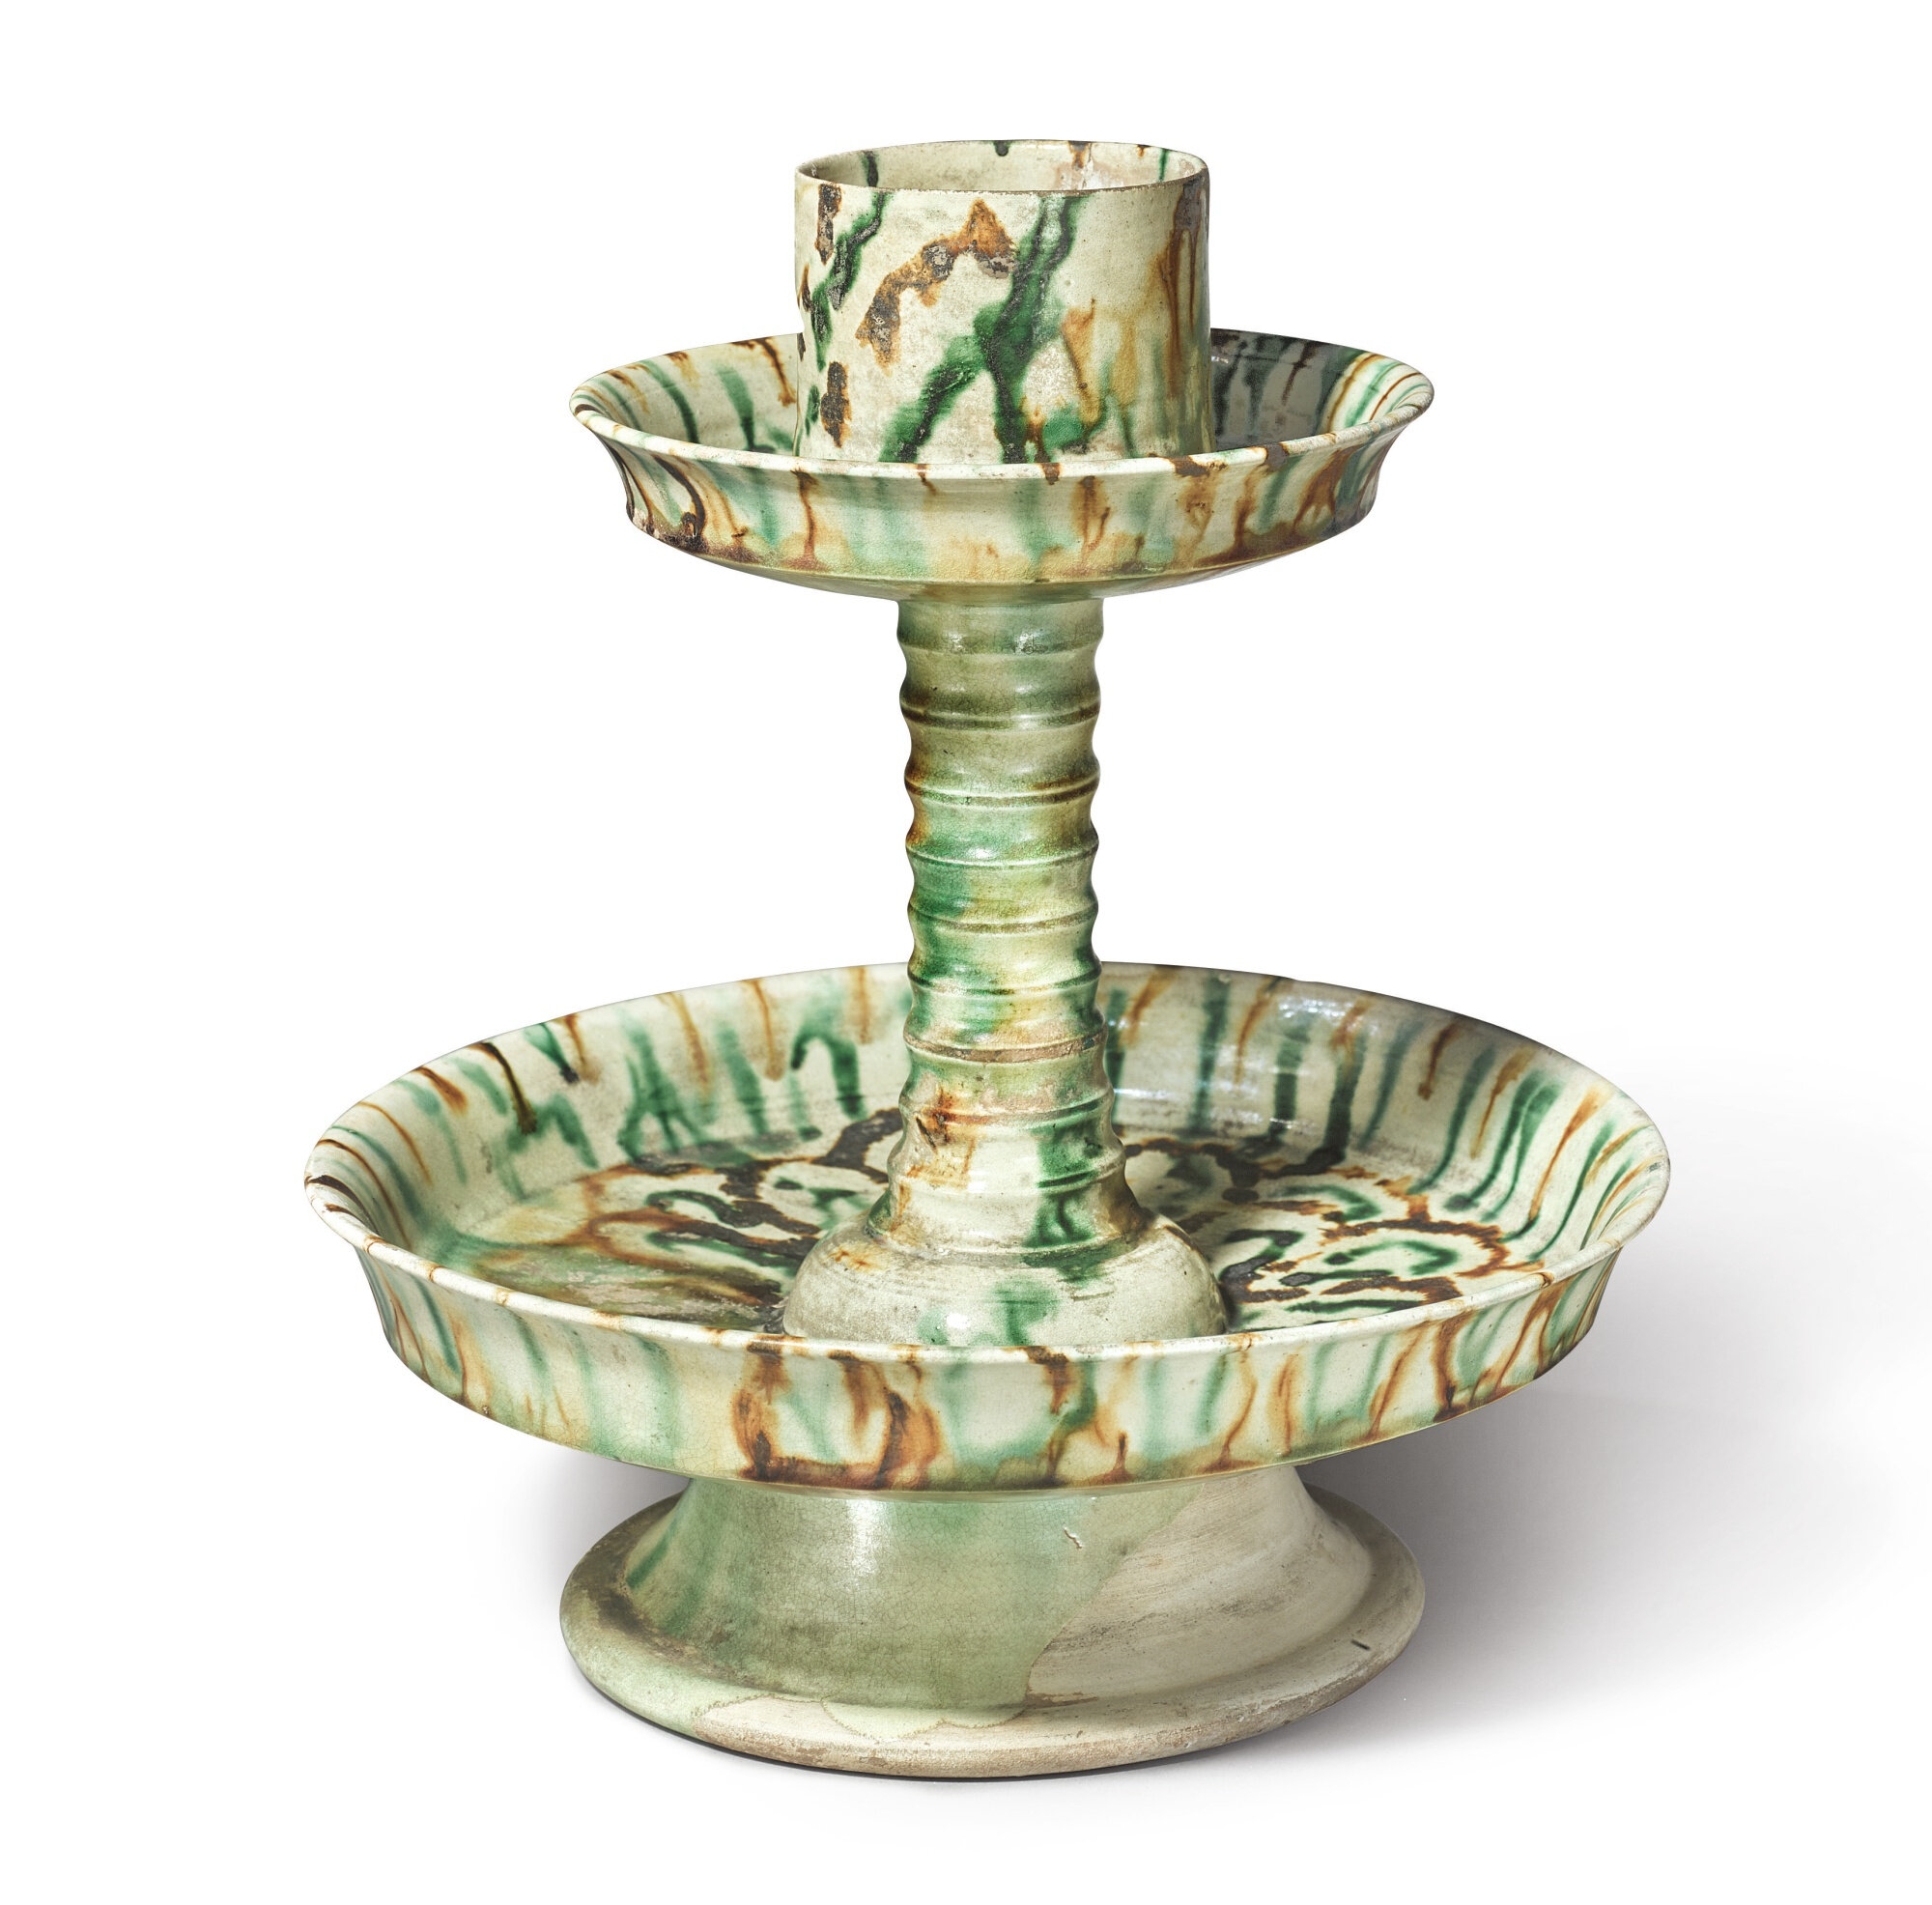 A rare sancai-glazed candle stand, Tang dynasty (618-907)